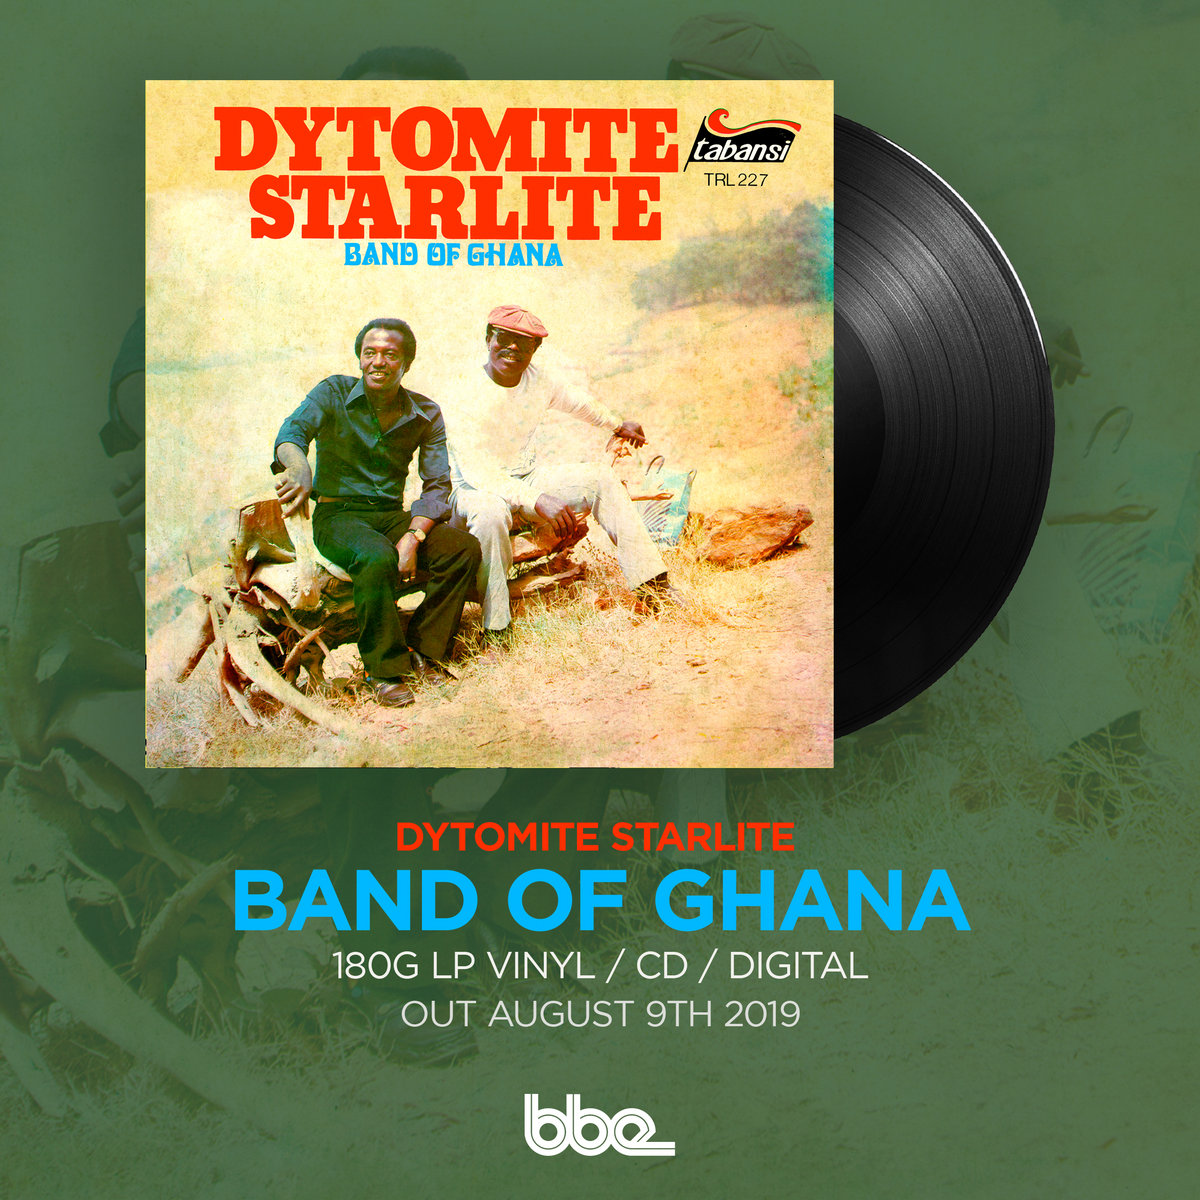 Dytomite Starlite Band of Ghana | BBE